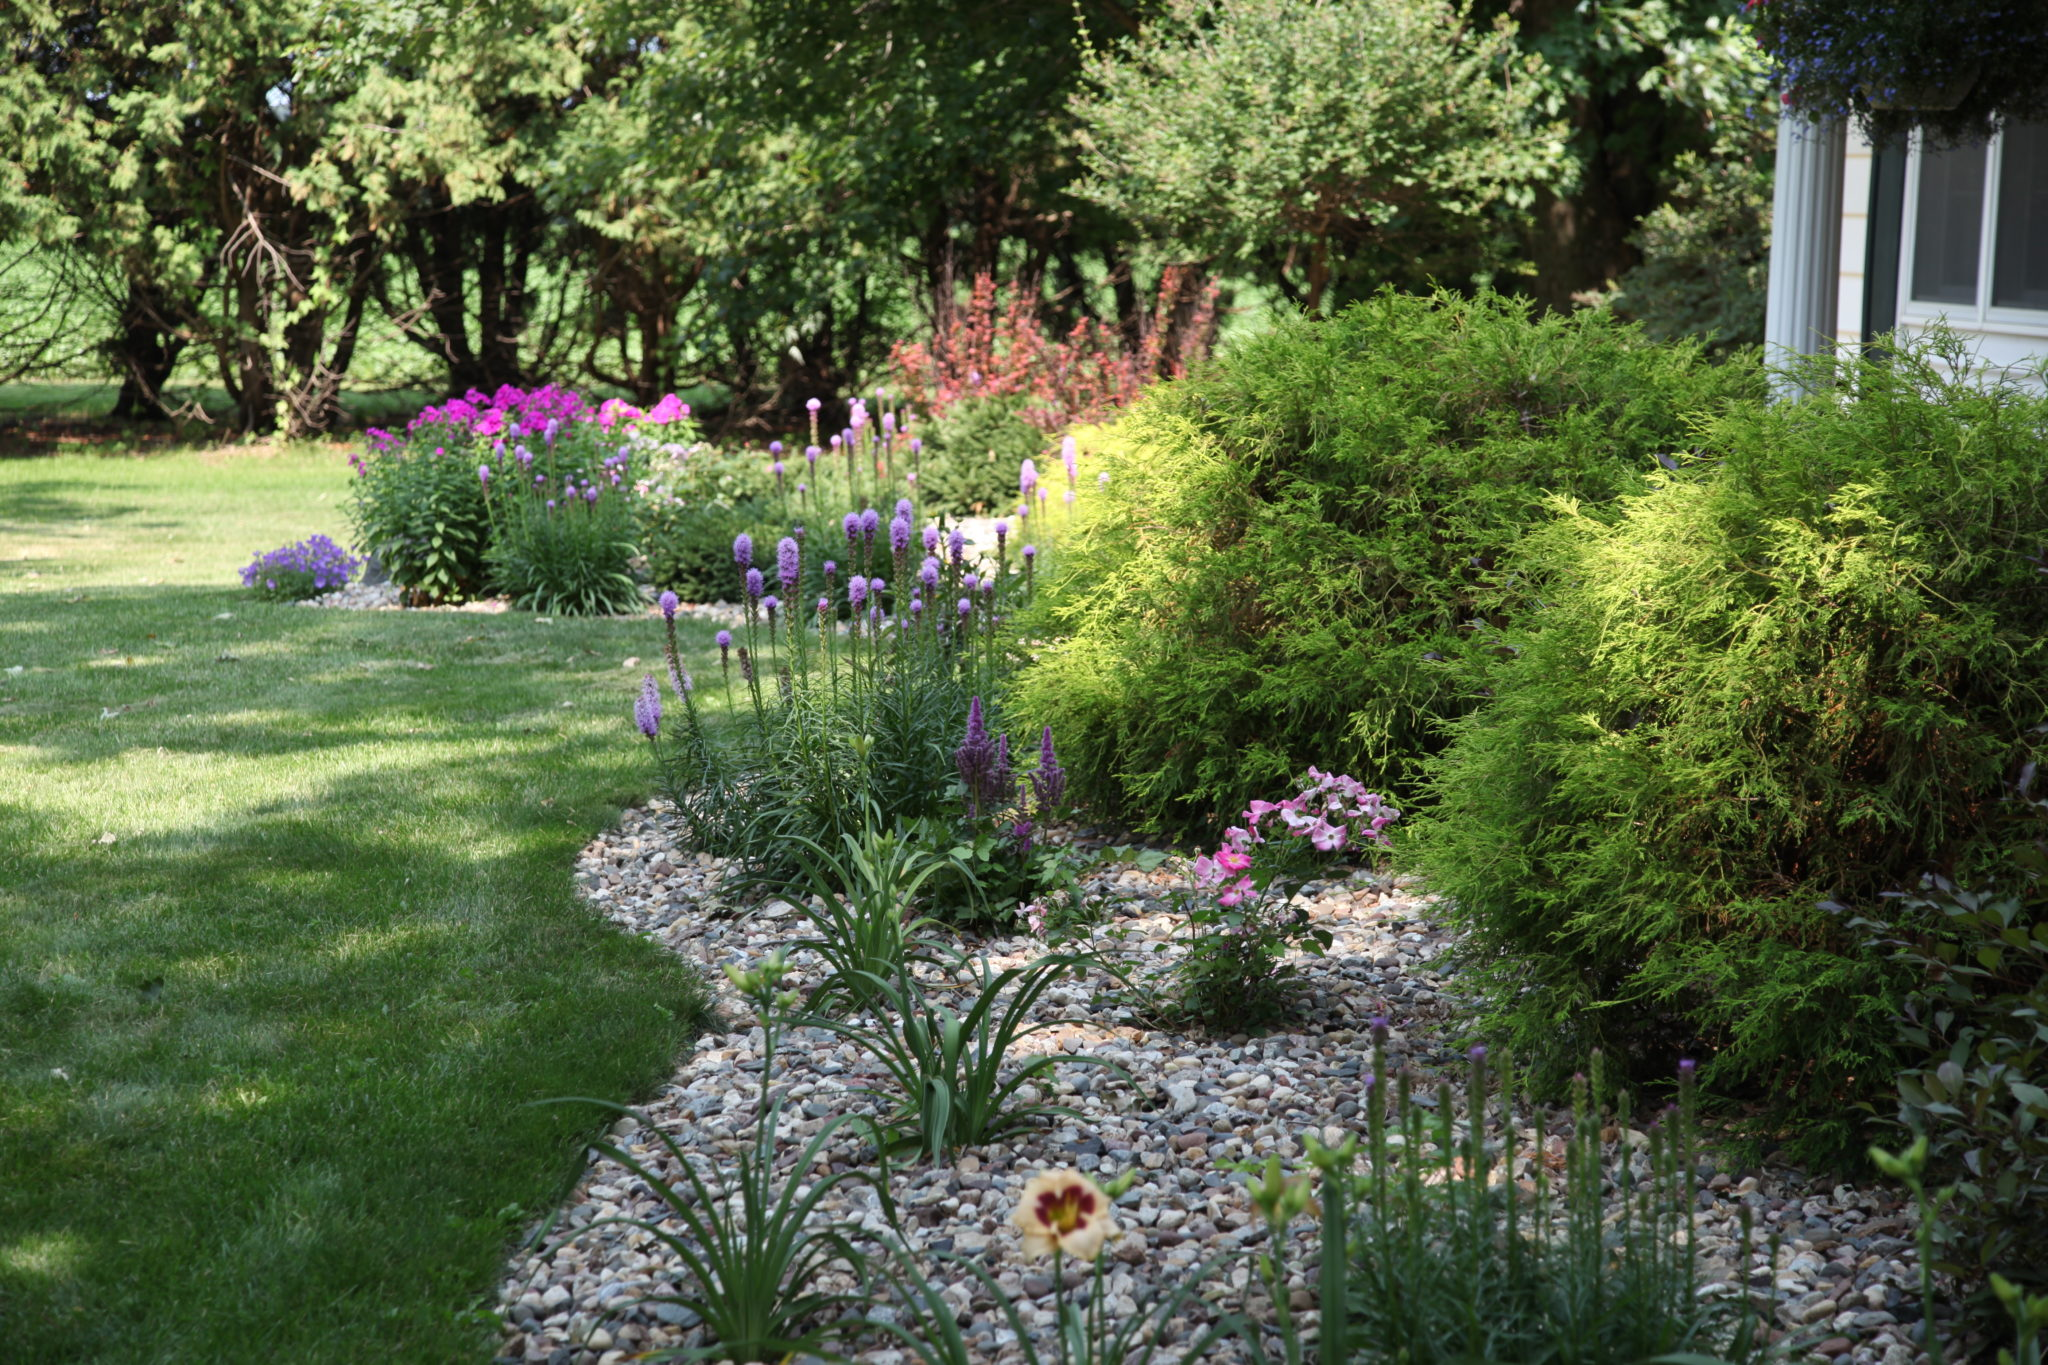 Landscaping landscape plans rochester area landscape for Garden design landscaping company